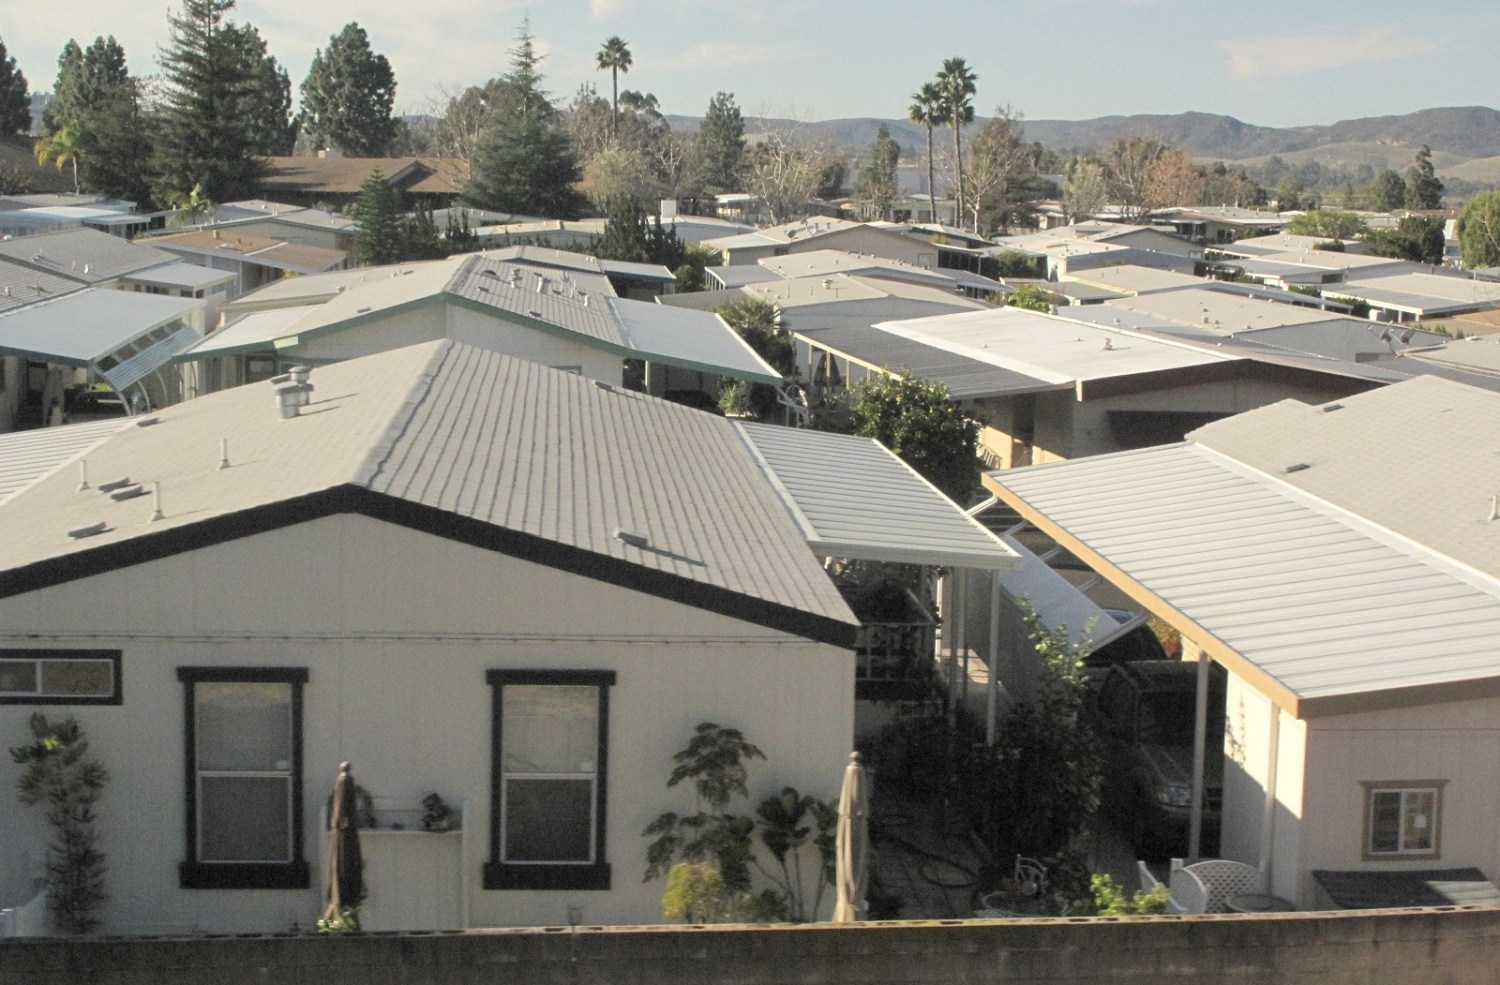 California Mobile Home Park Residents Face Barriers To Clean Water